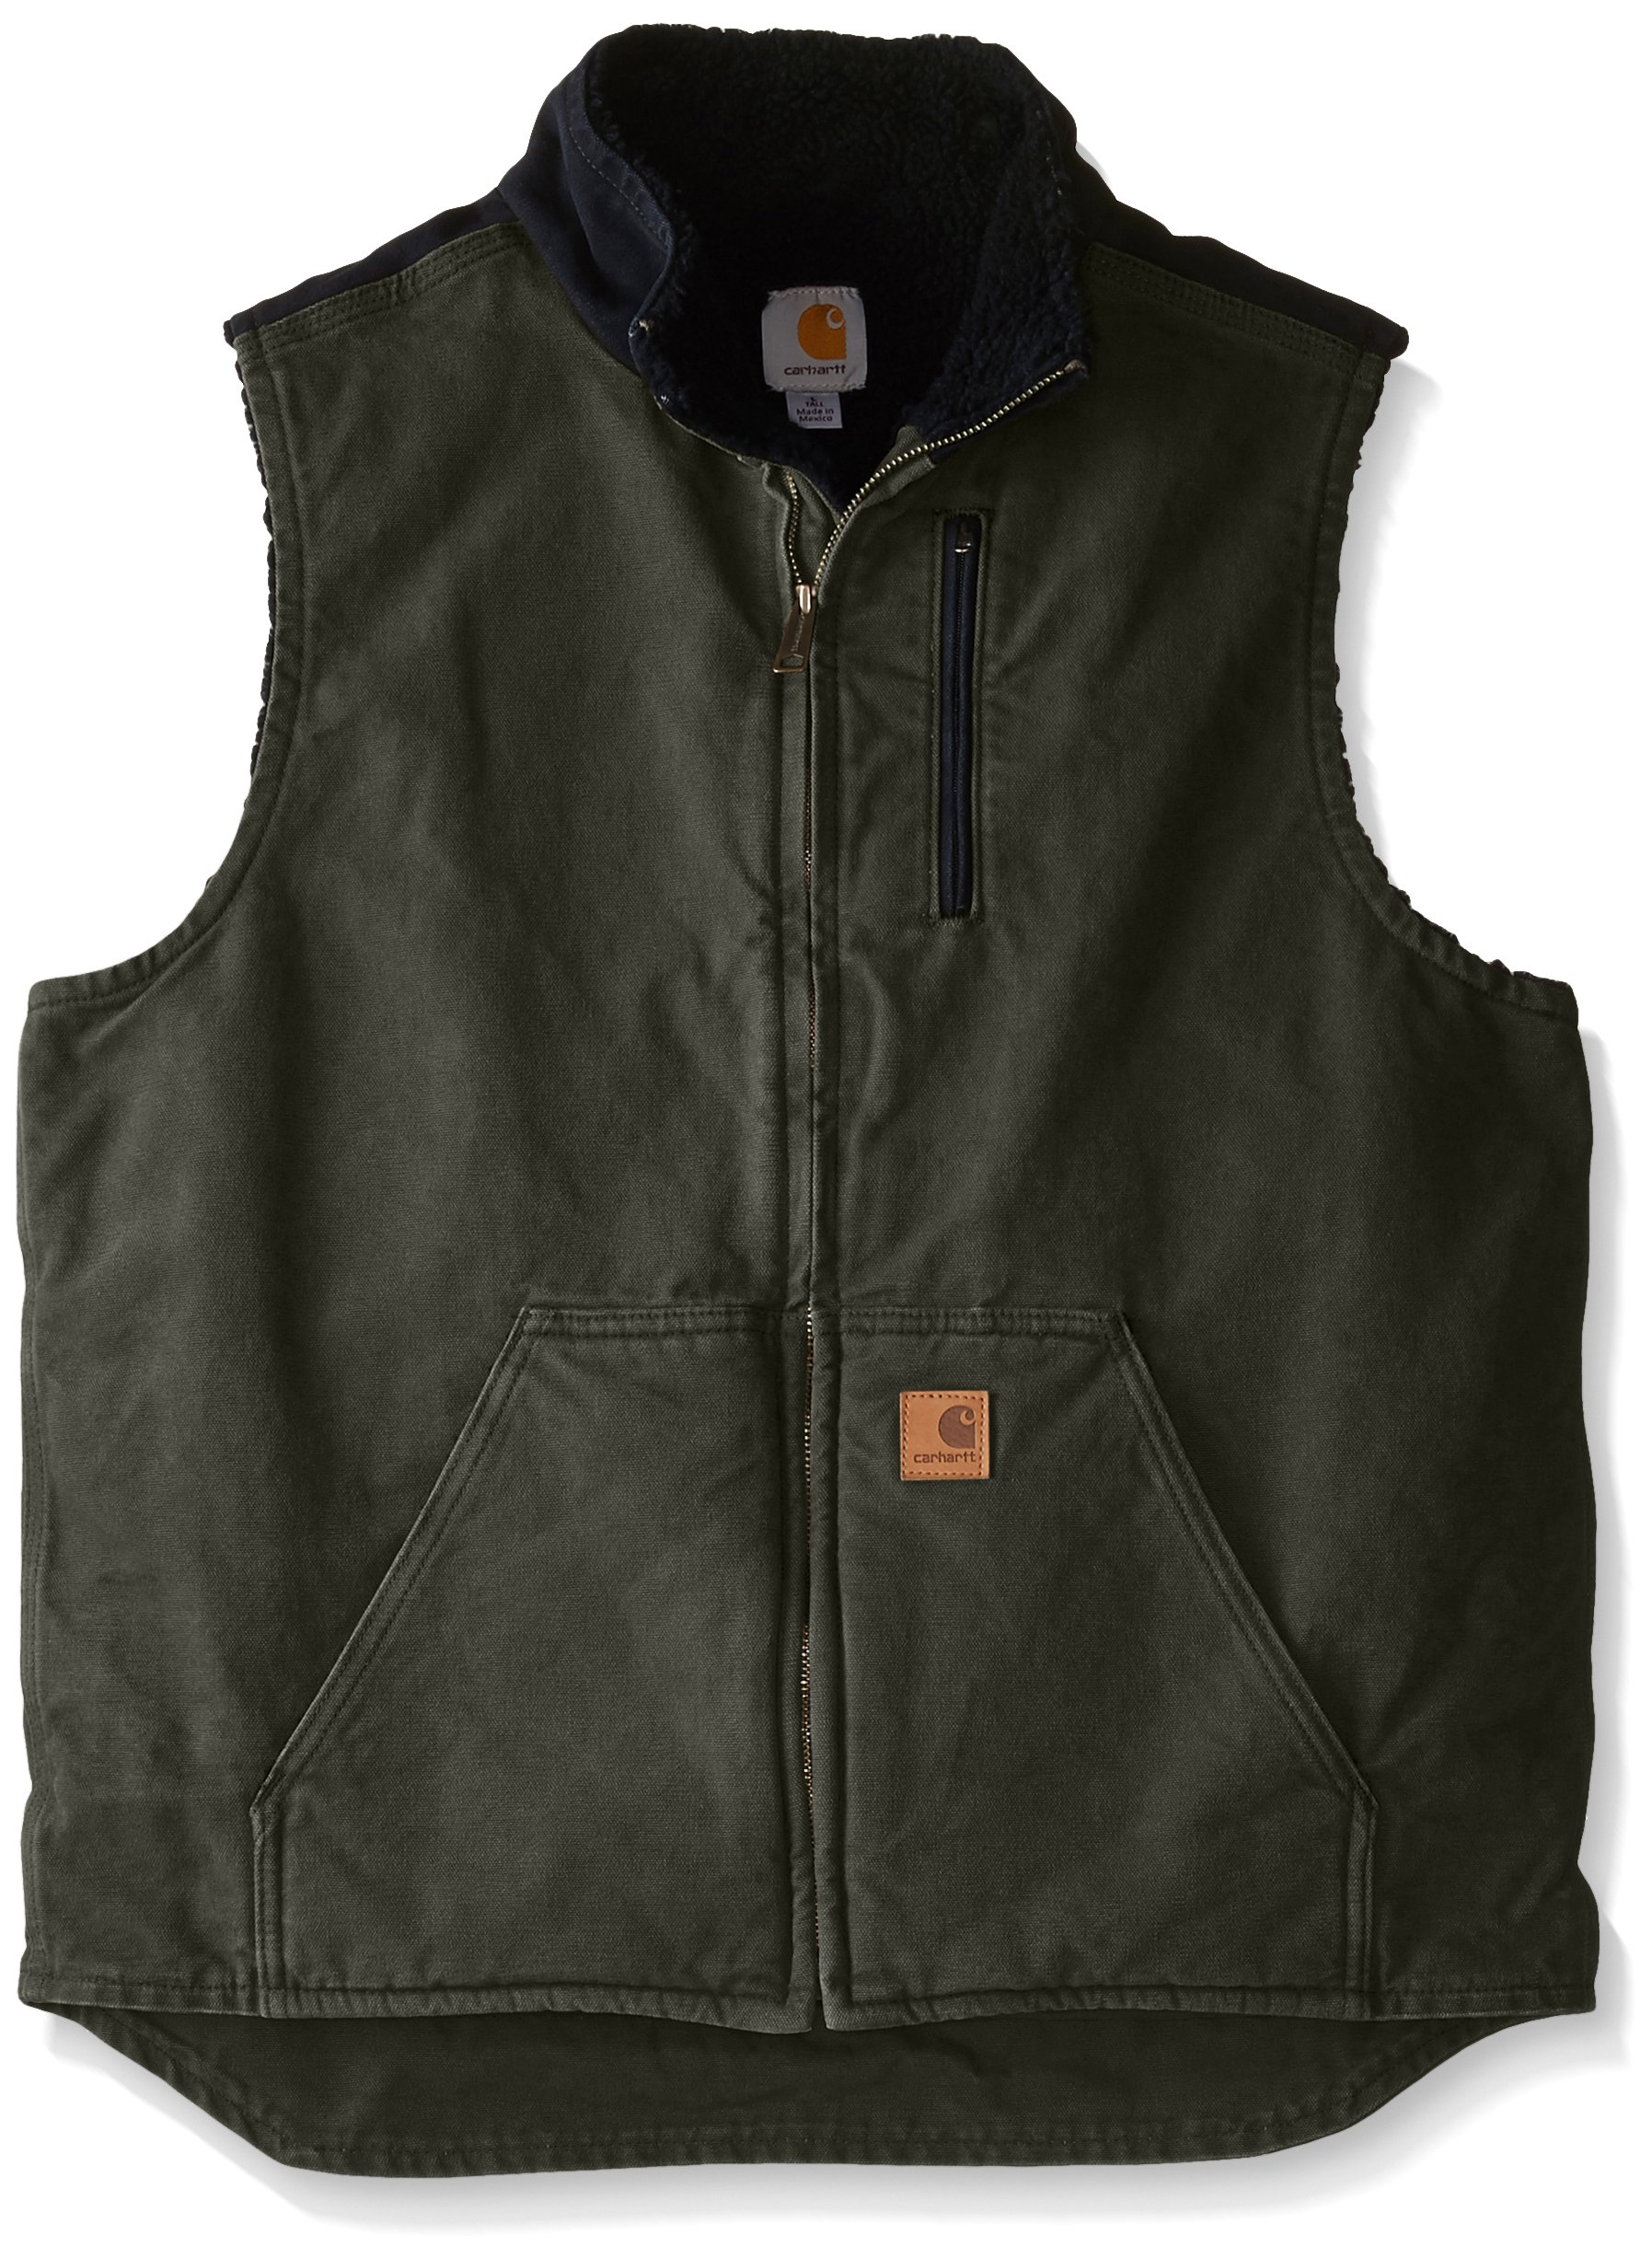 Carhartt Men's Sherpa Lined Sandstone Mock Neck Vest V33,Moss/Black,2X-Large by Carhartt